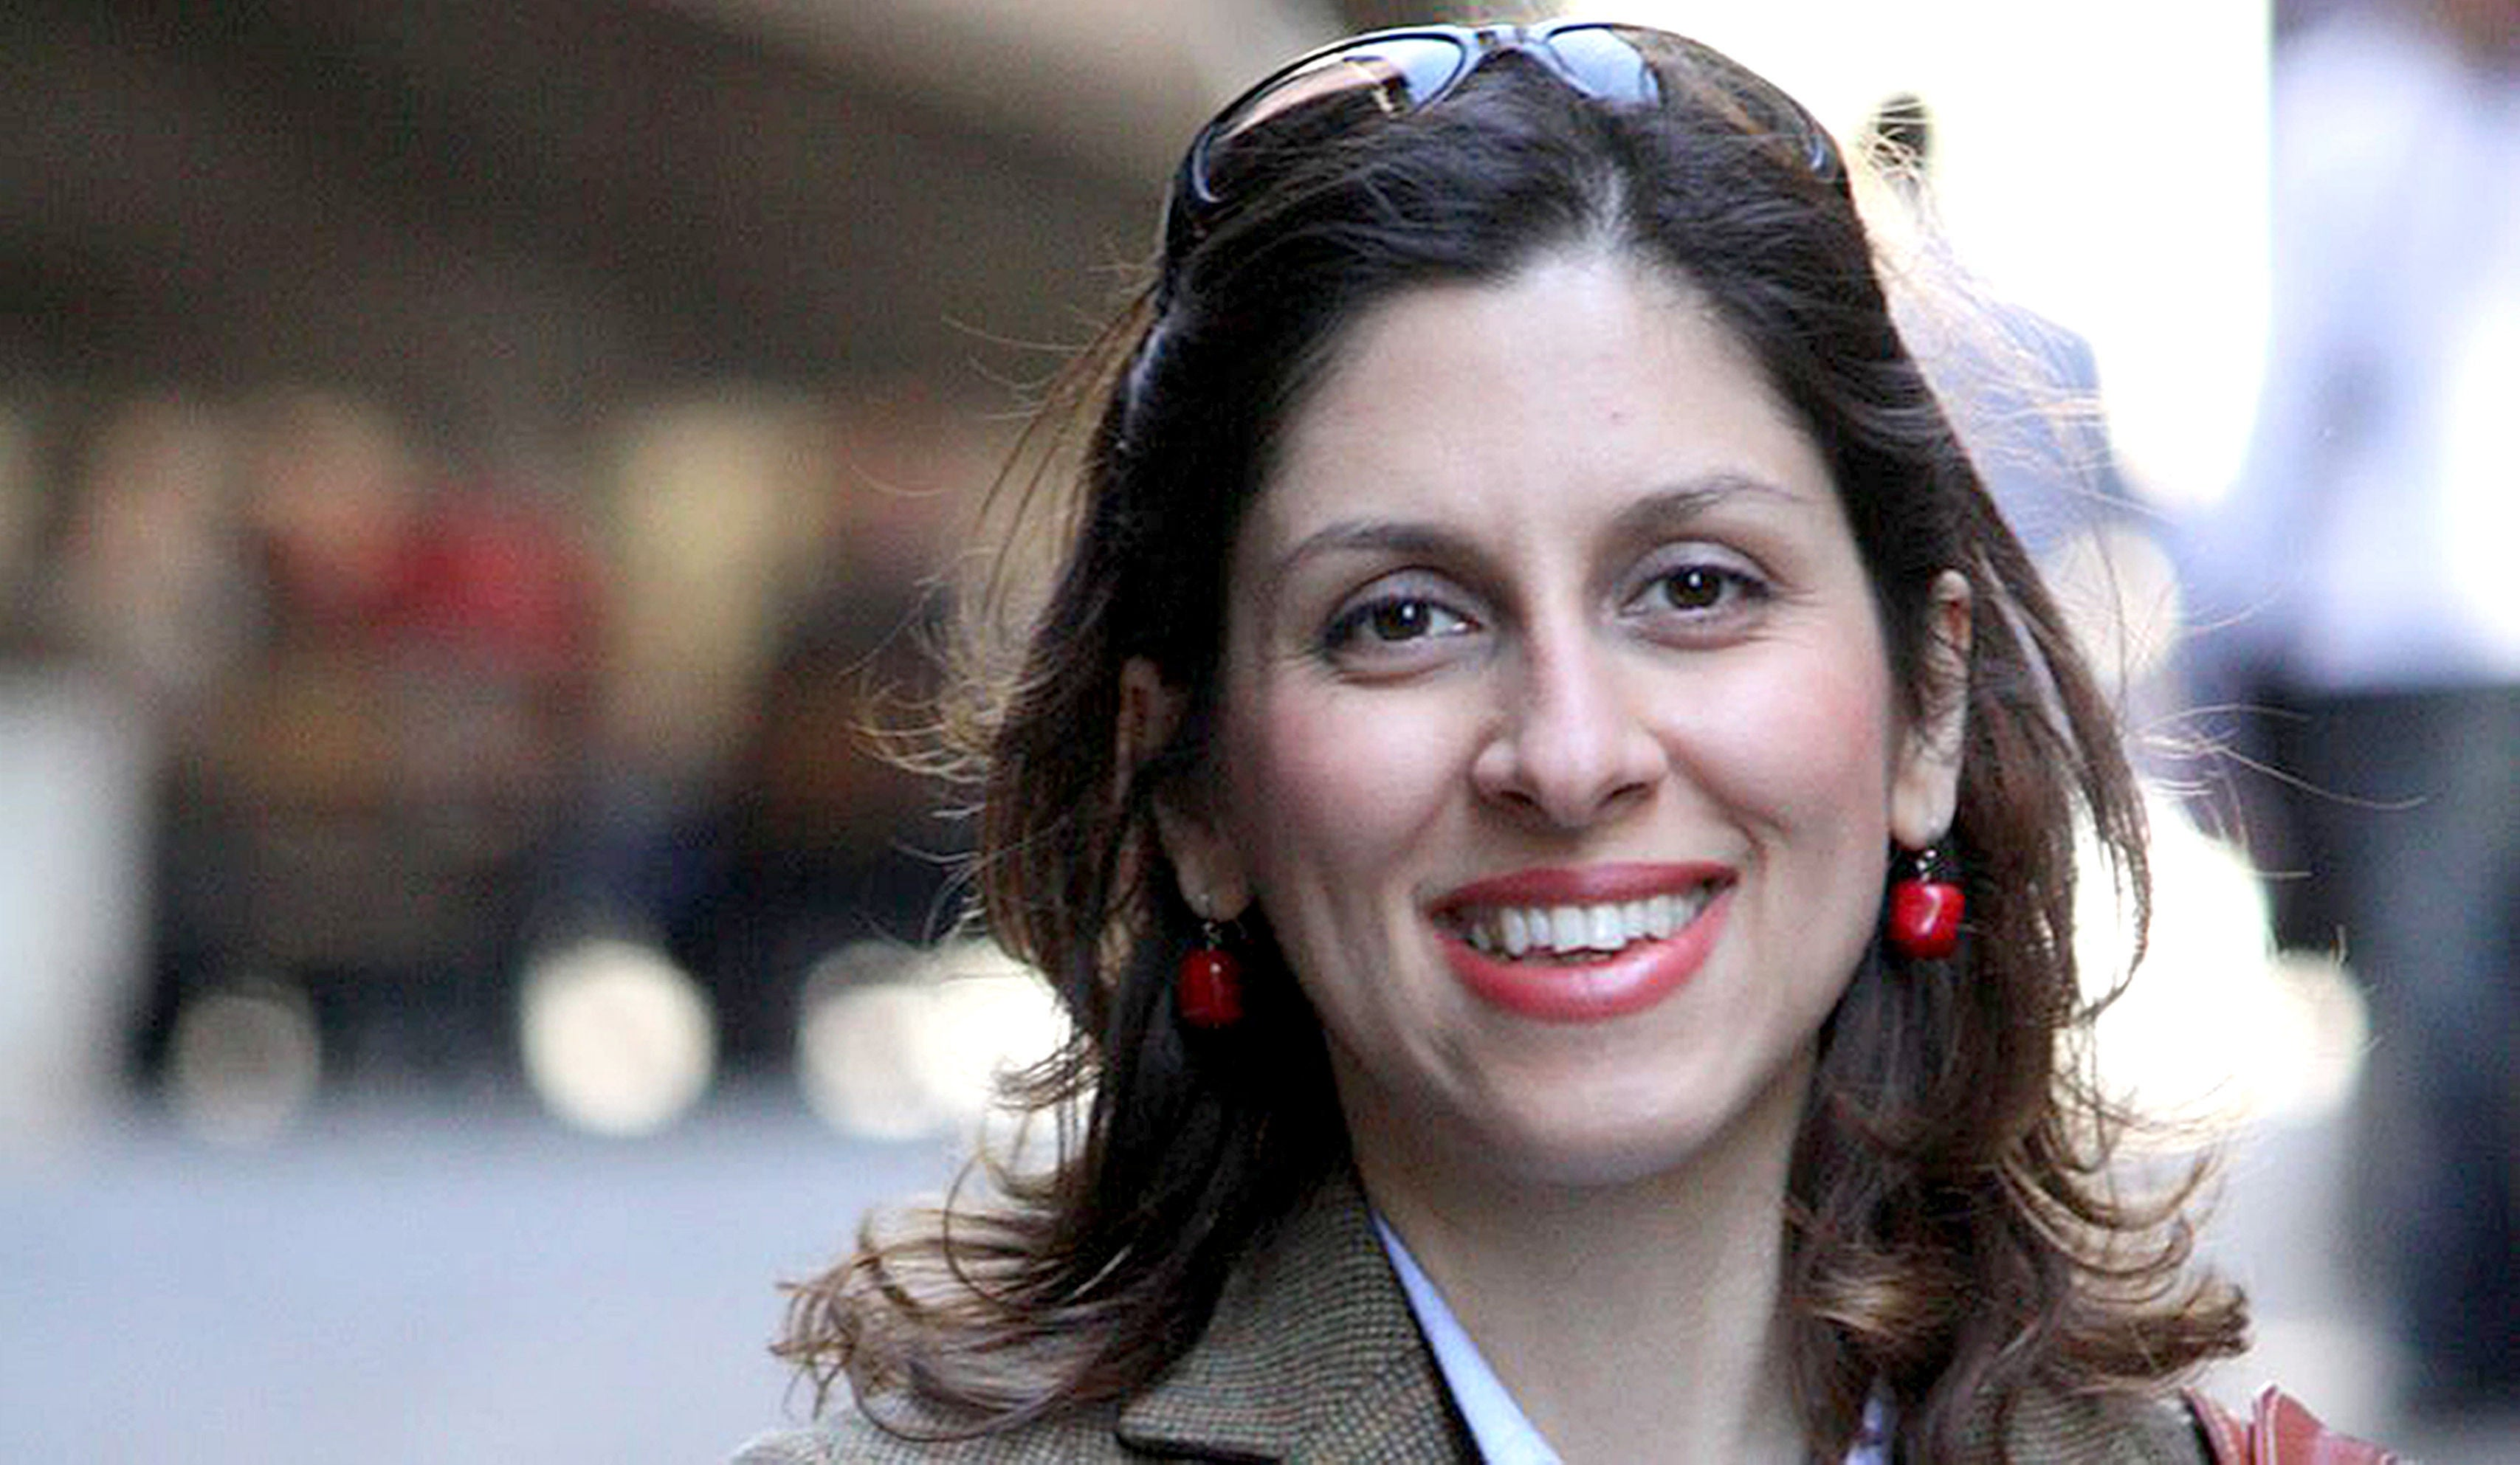 Iran's release of academic shows 'light at the end of the tunnel', Nazanin Zaghari-Ratcliffe's husband says - independent